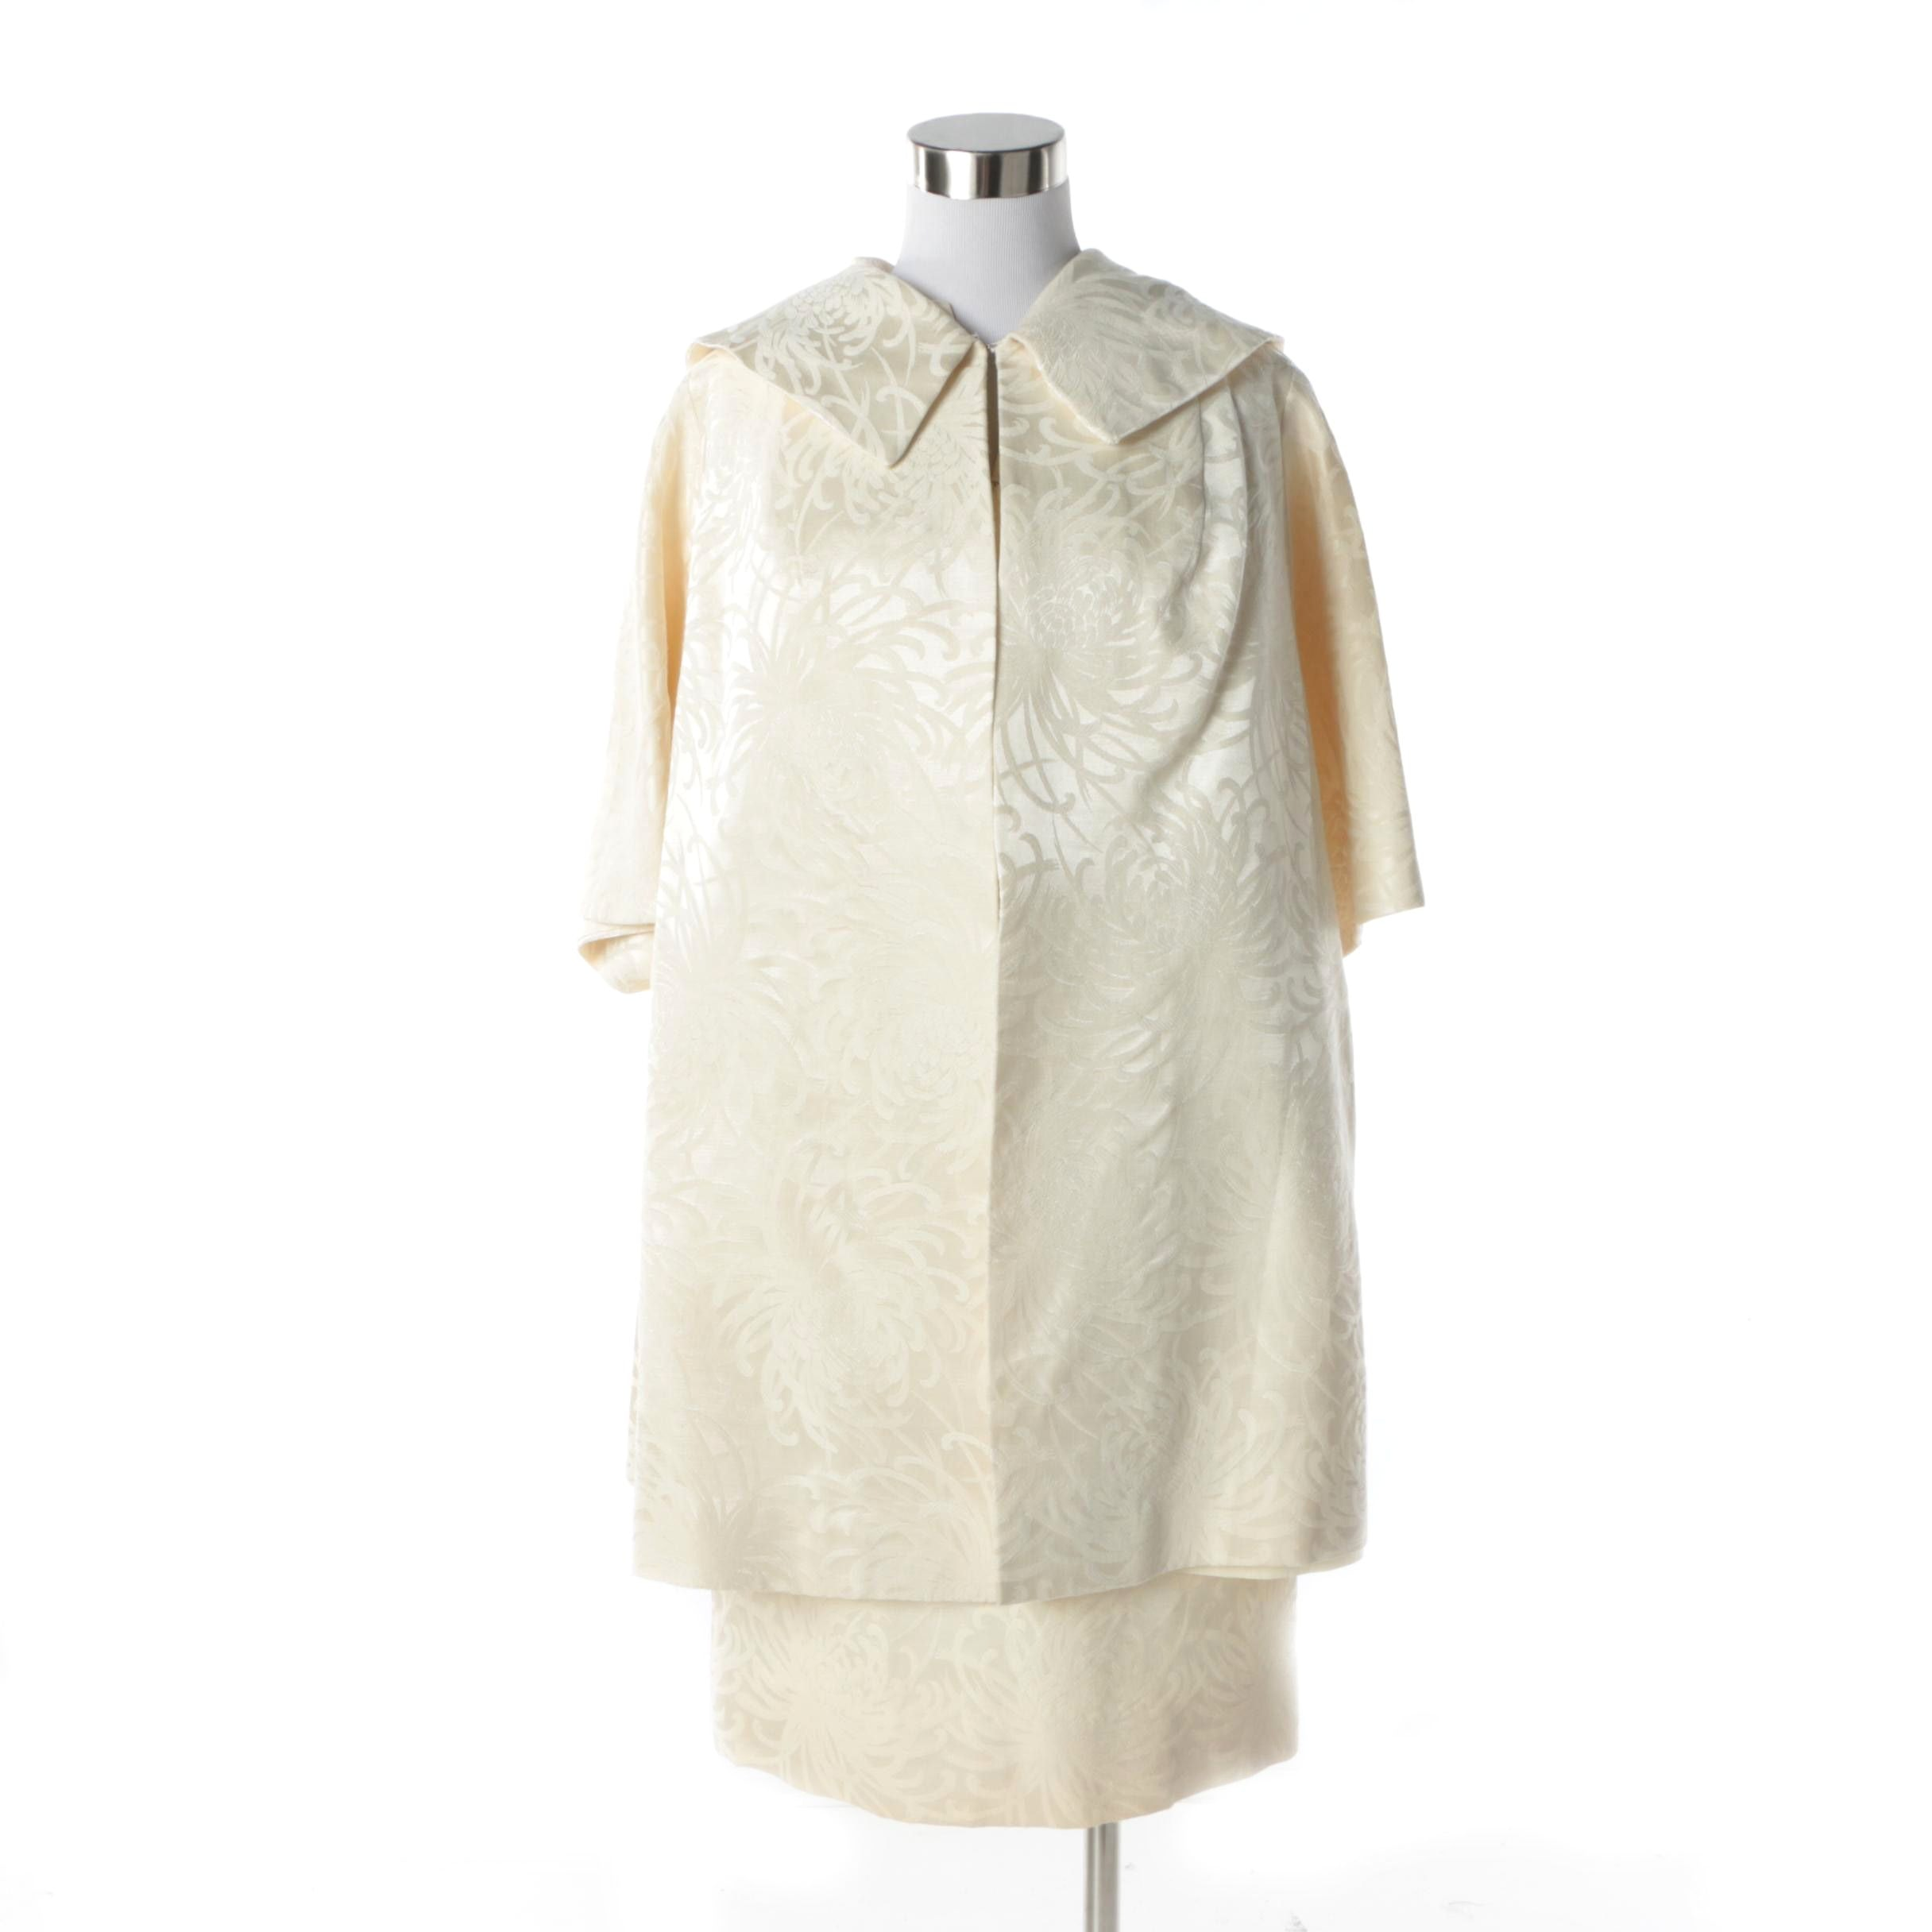 1960s Lilli Diamond Ivory Chrysanthemum Brocade Beaded Dress and Opera Coat